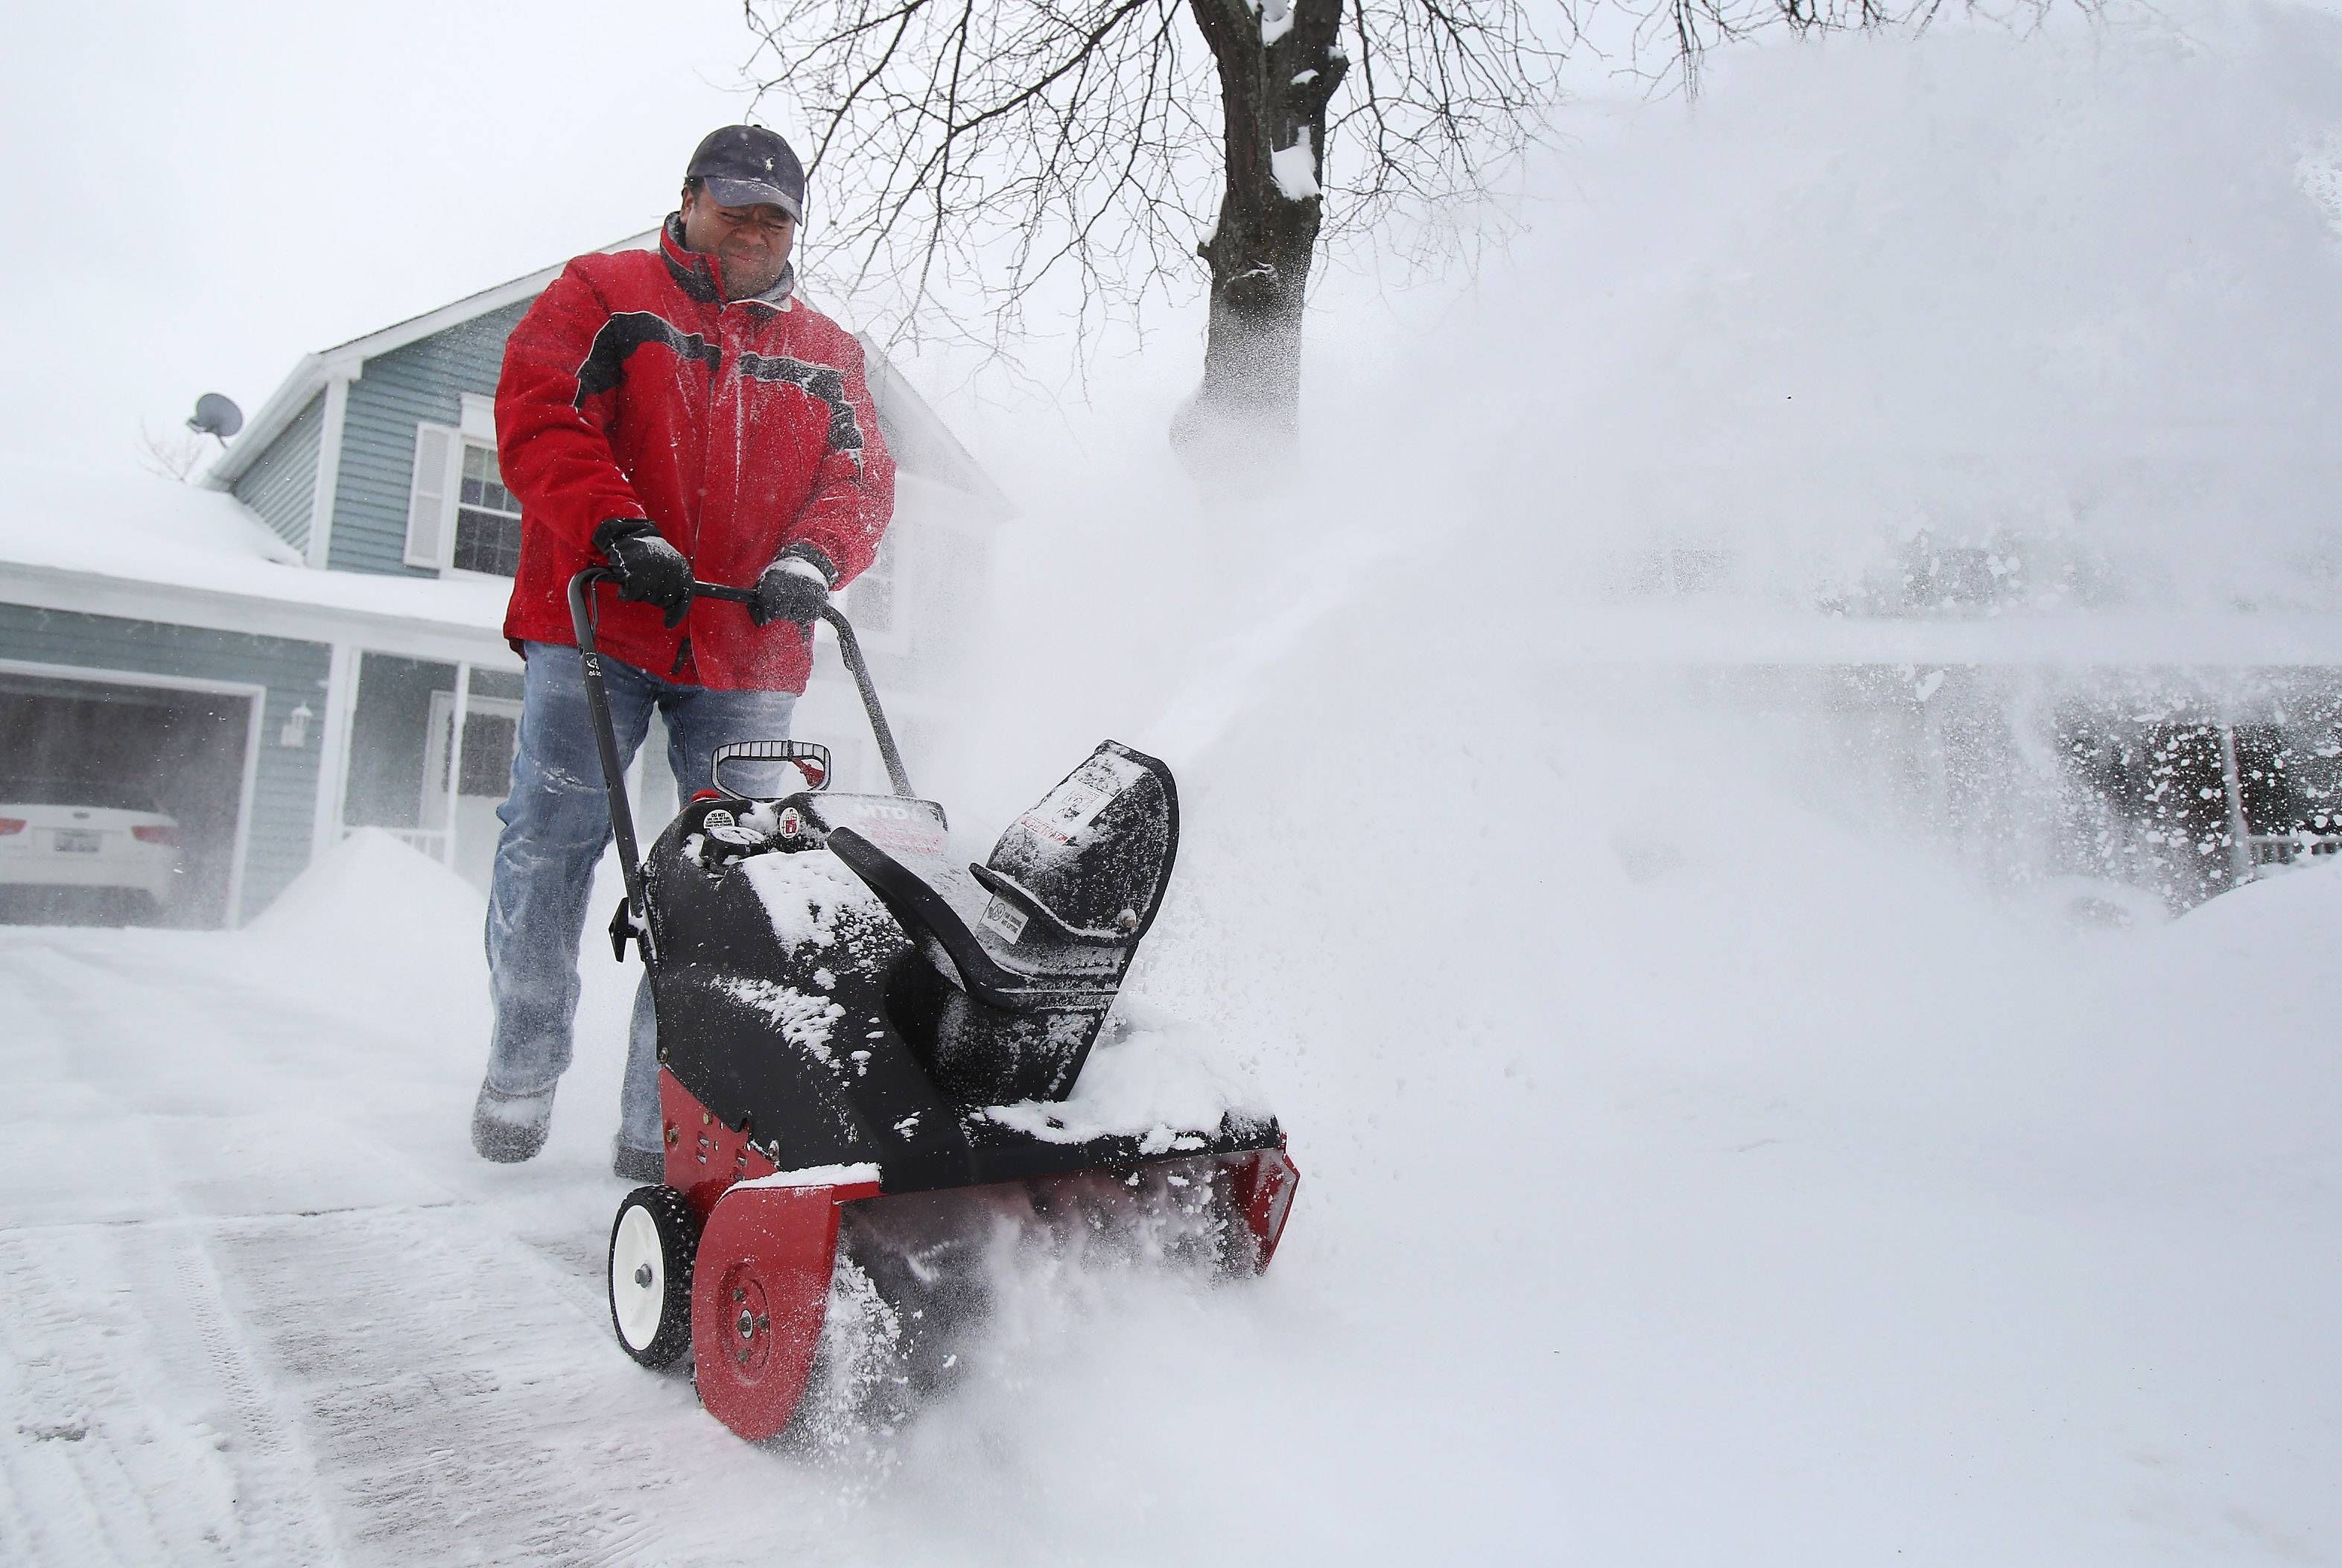 Mundelein resident Jose Ruiz clears his driveway along Bristol Court with a snowblower last Wednesday morning after an overnight snowstorm swept through Lake County.